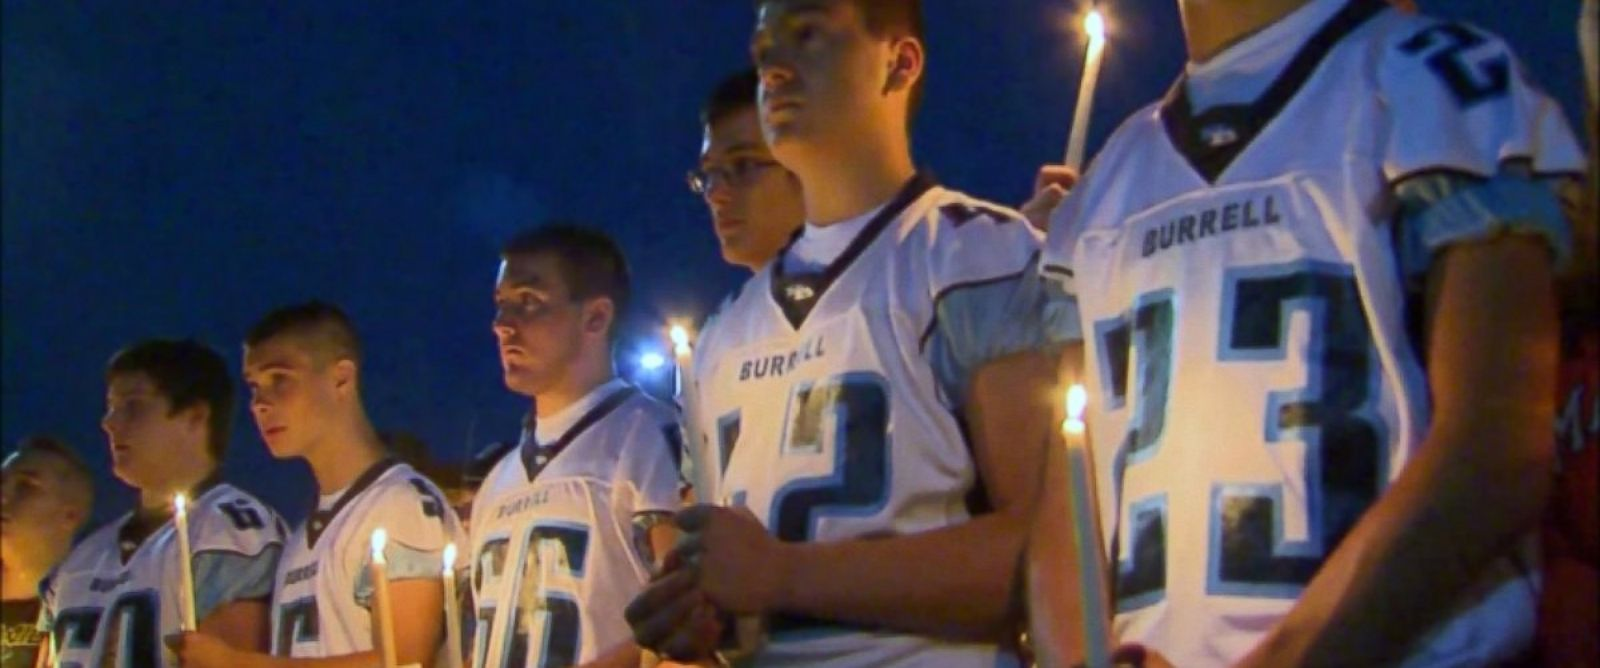 PHOTO: Burrell High School football players mourn at a vigil for Noah Cornuet.